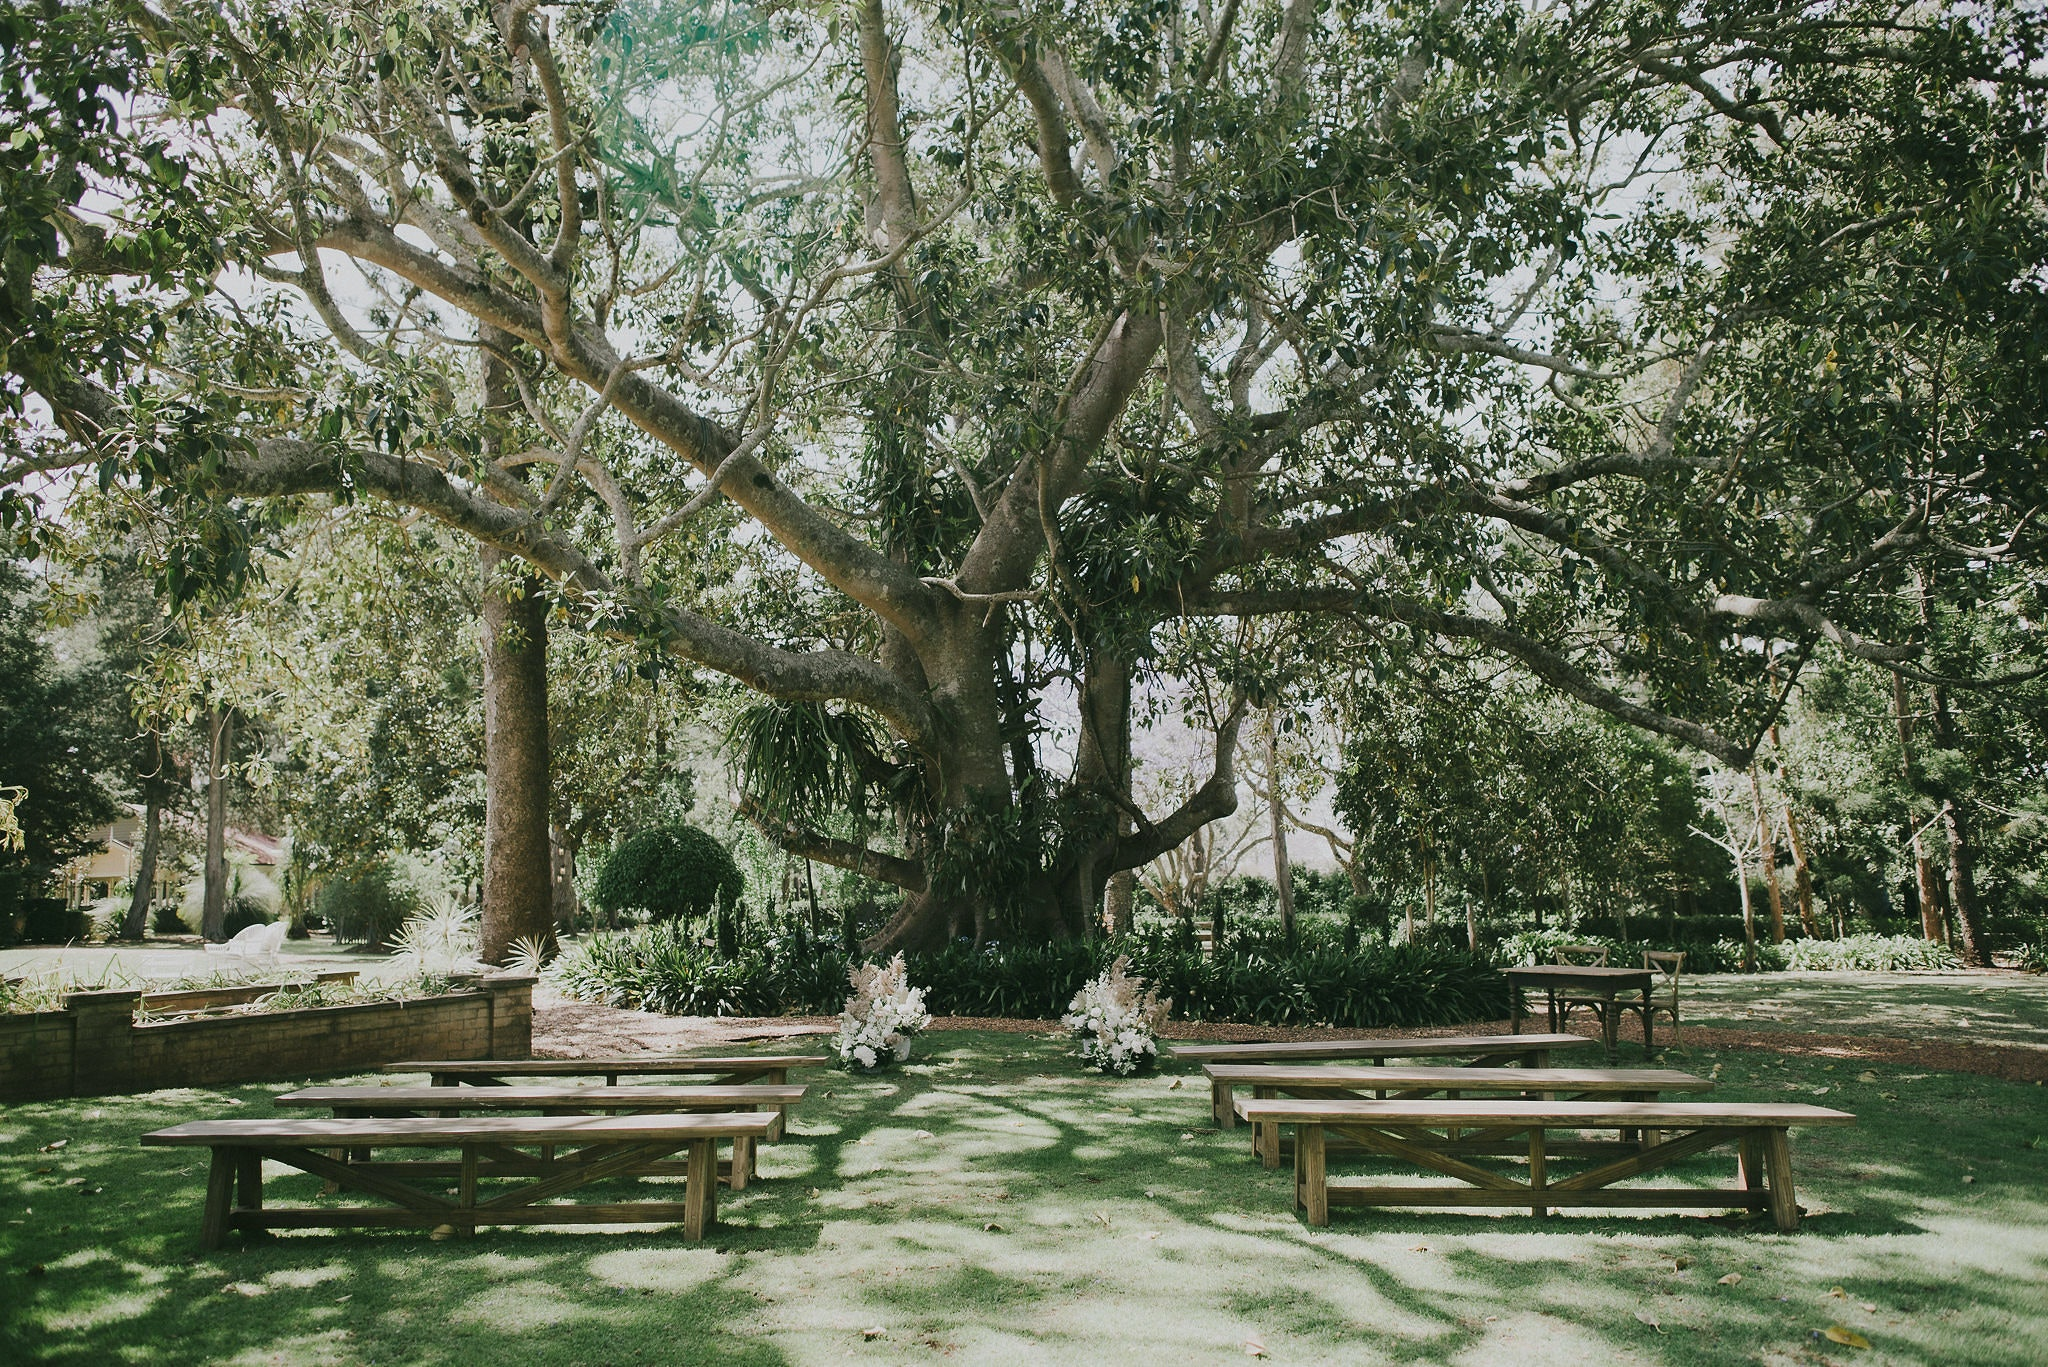 Ceremony location under a big tree